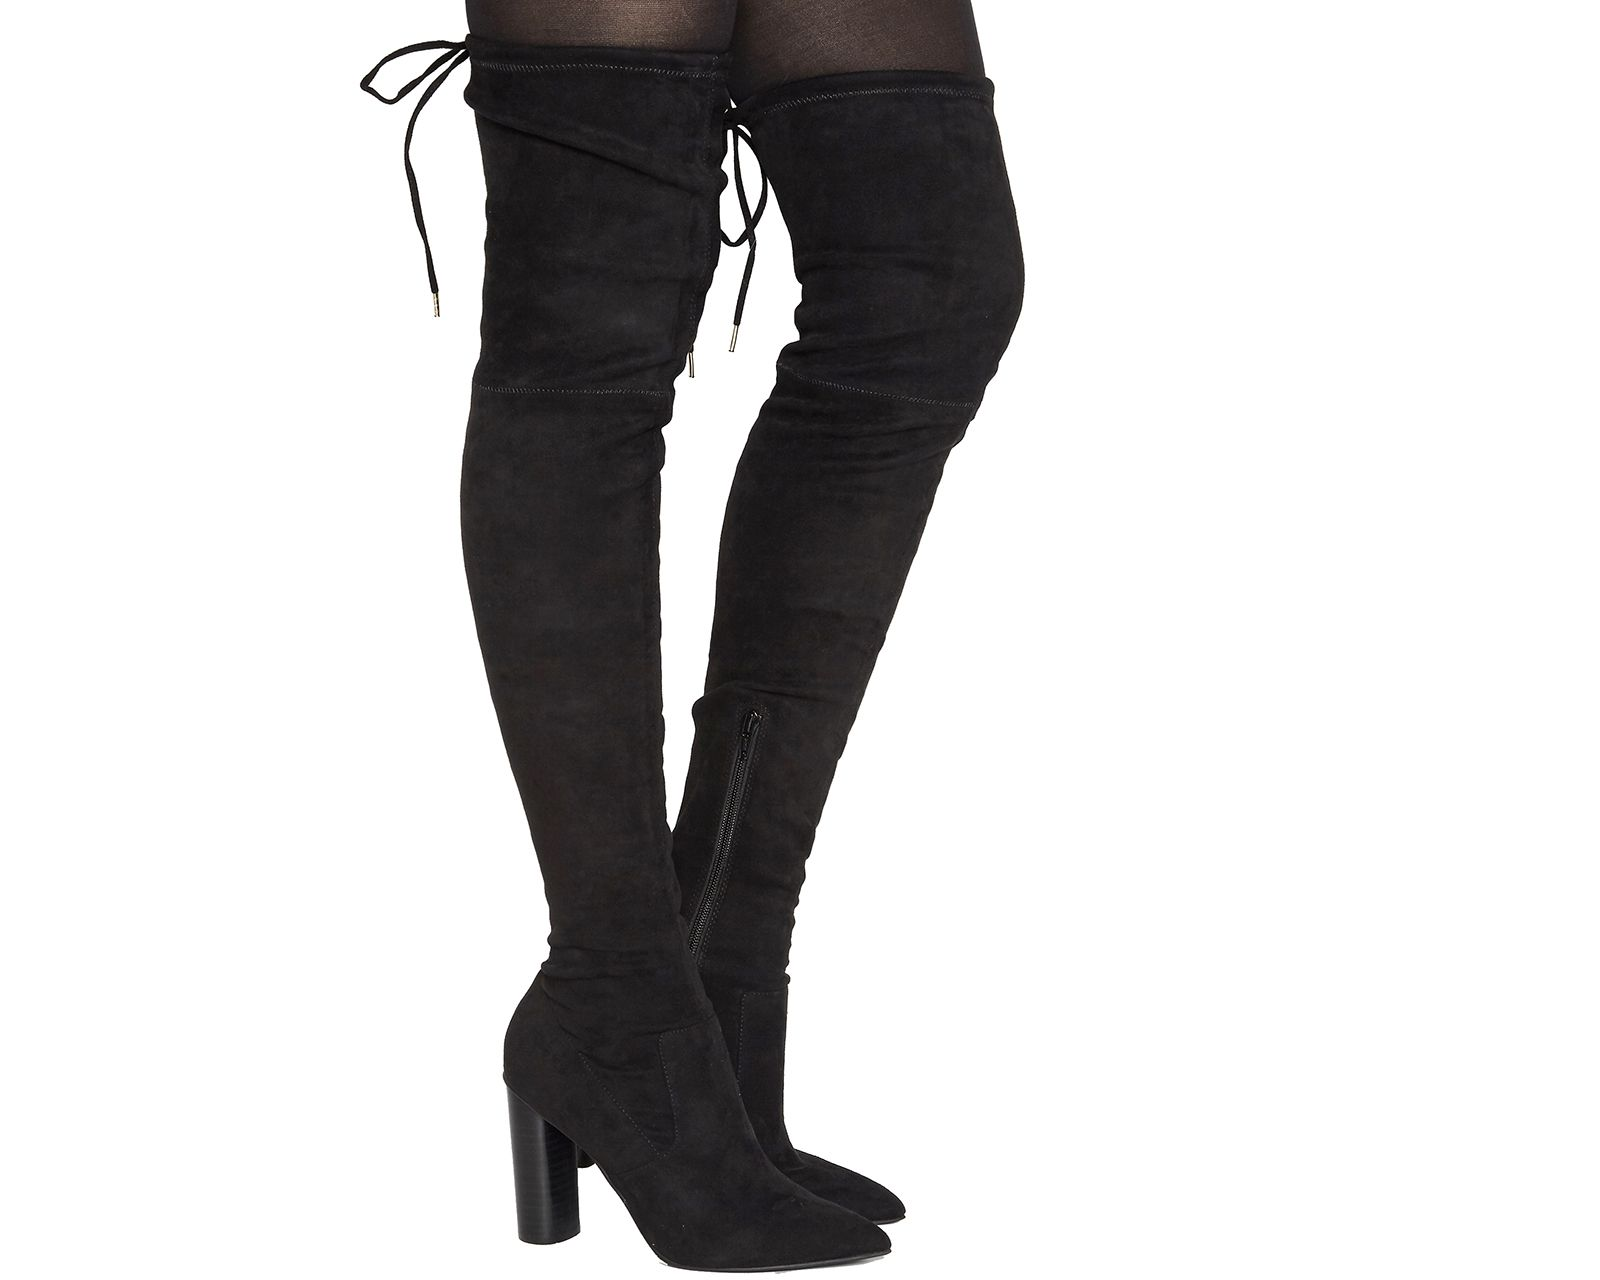 office the shop. Office Kandy Shop Over The Knee Boots Black